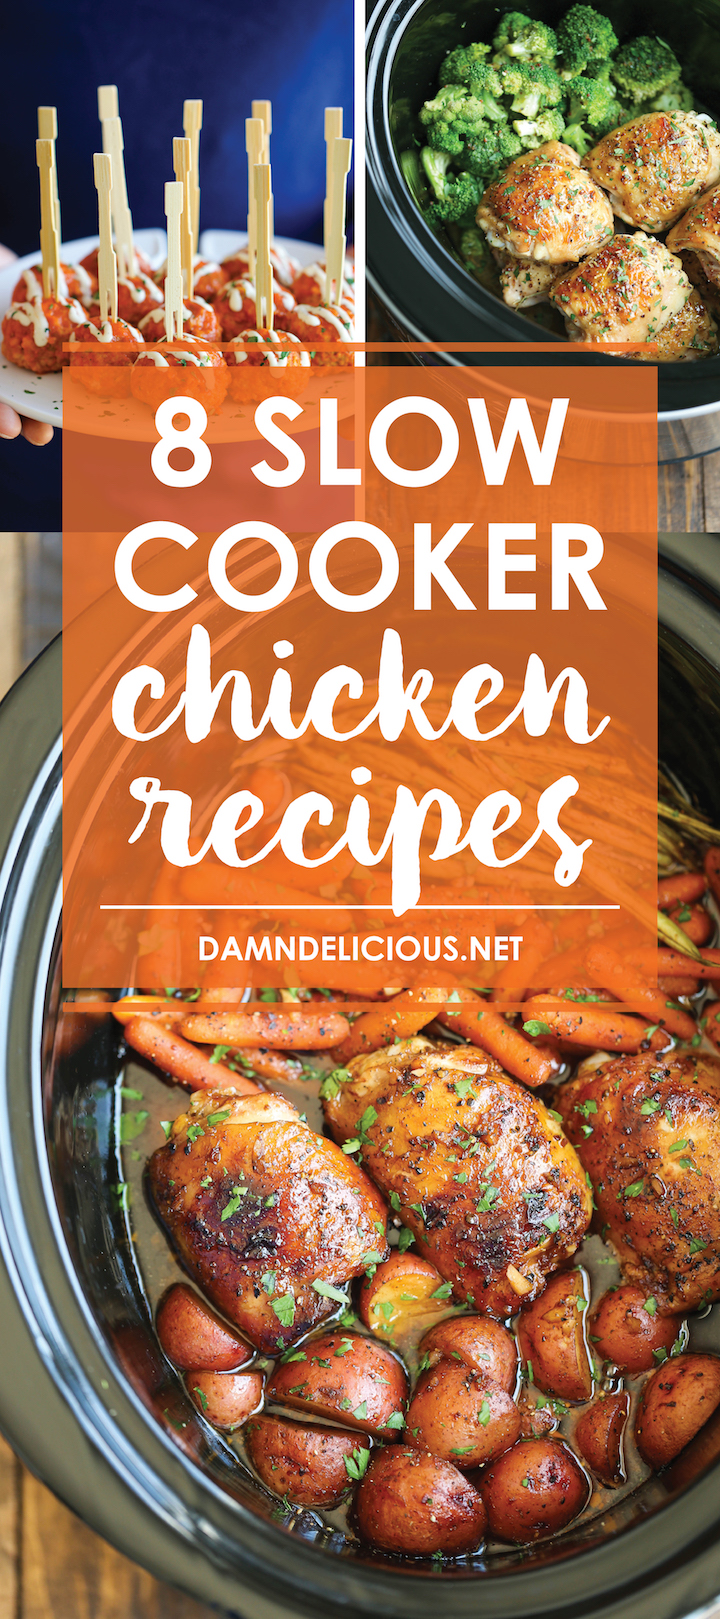 8 Slow Cooker Chicken Recipes - No more boring chicken dinners! With the help of your crockpot, set it and forget it for the BEST/easiest chicken dinners!